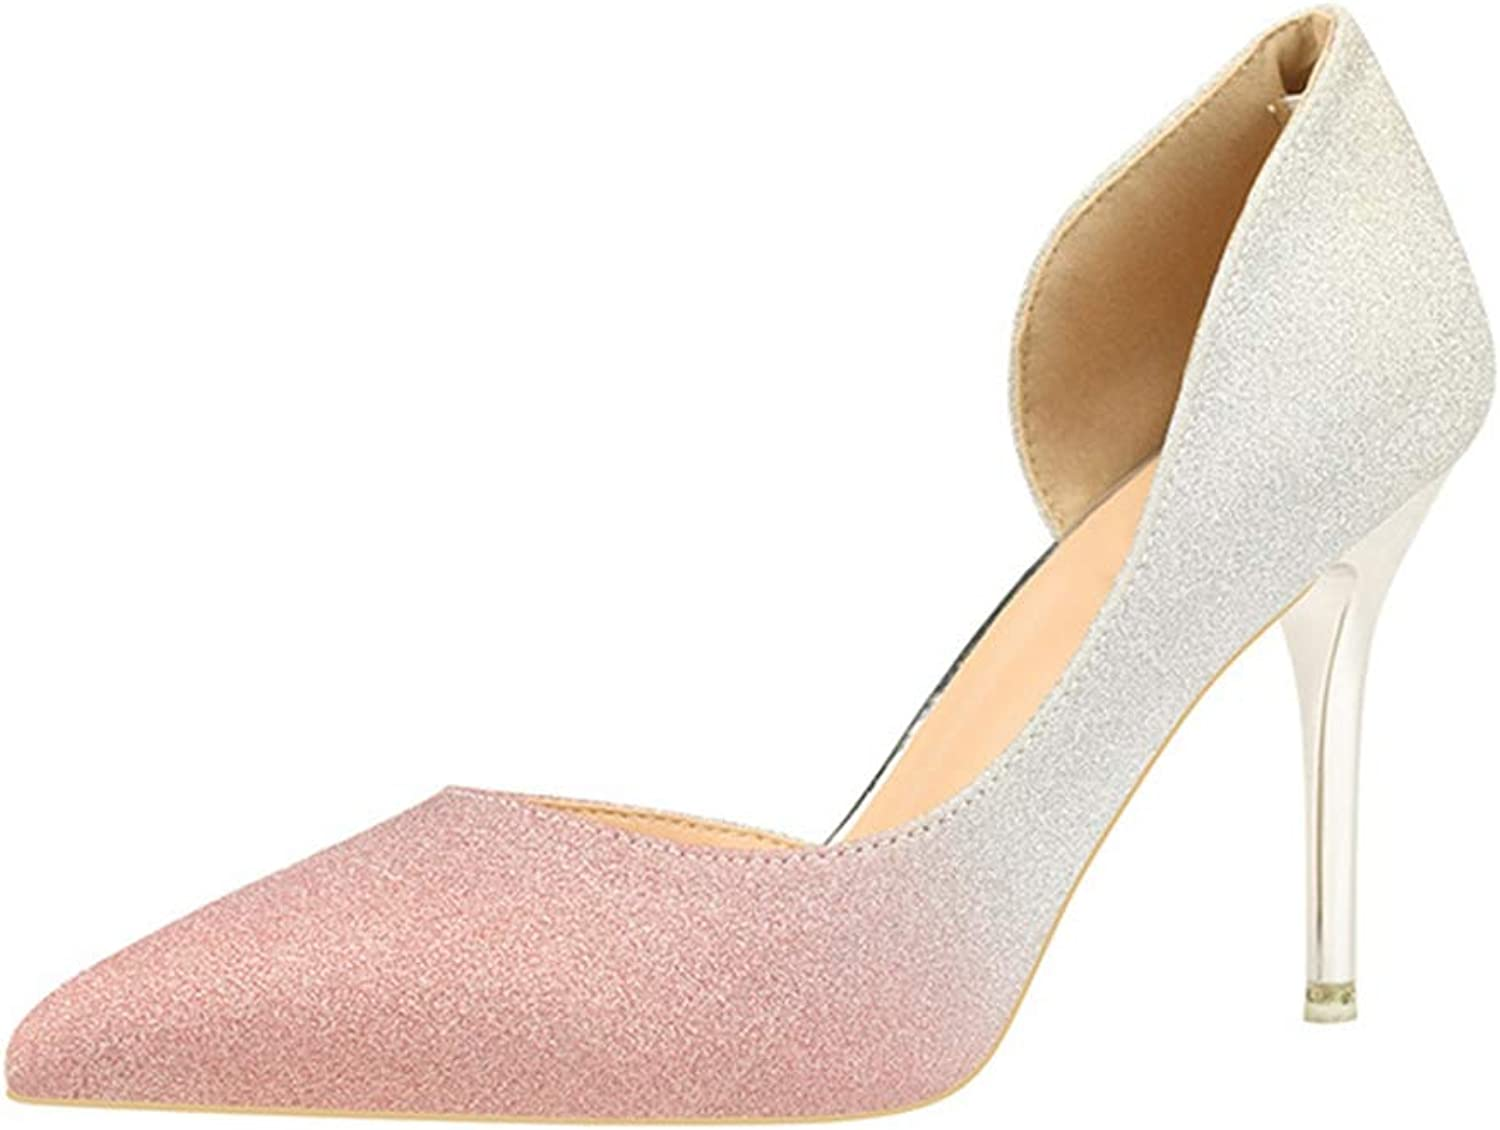 Sam Carle Women's Pumps,Fashion Comfortable High Heel Grey Pink Dress Wedding Pump